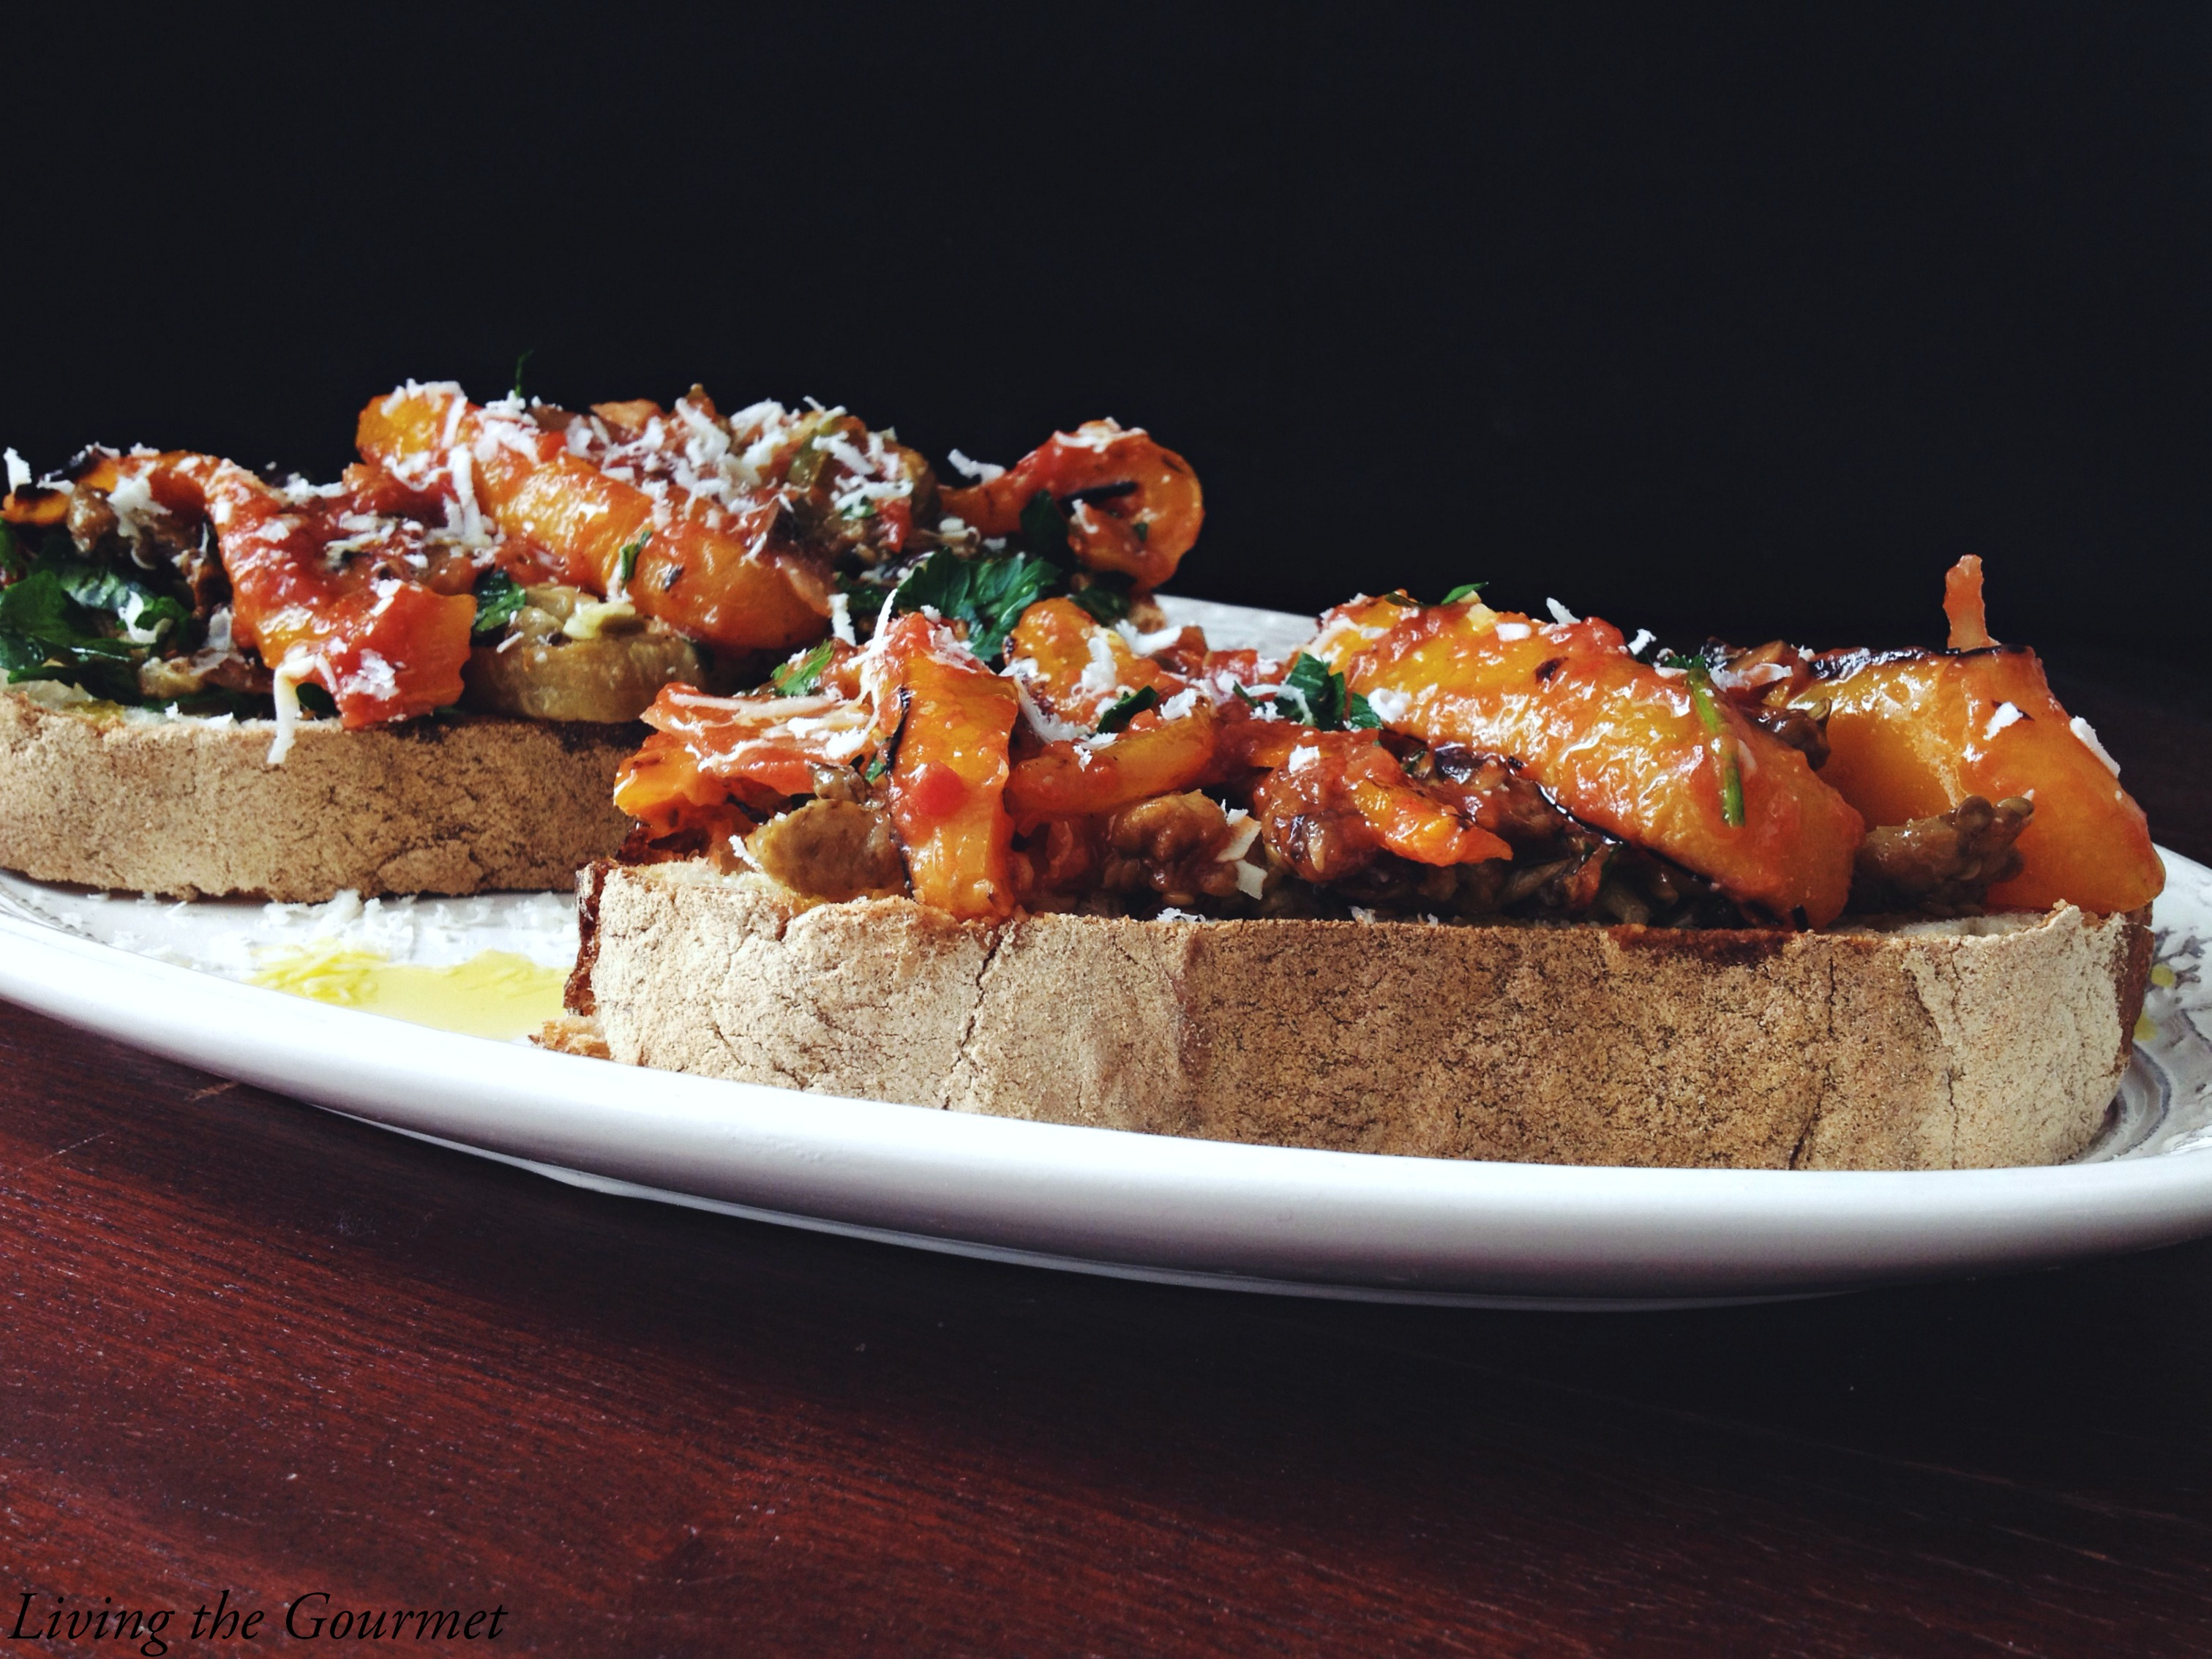 Living the Gourmet: Roasted Peppers & Eggplant Crostini